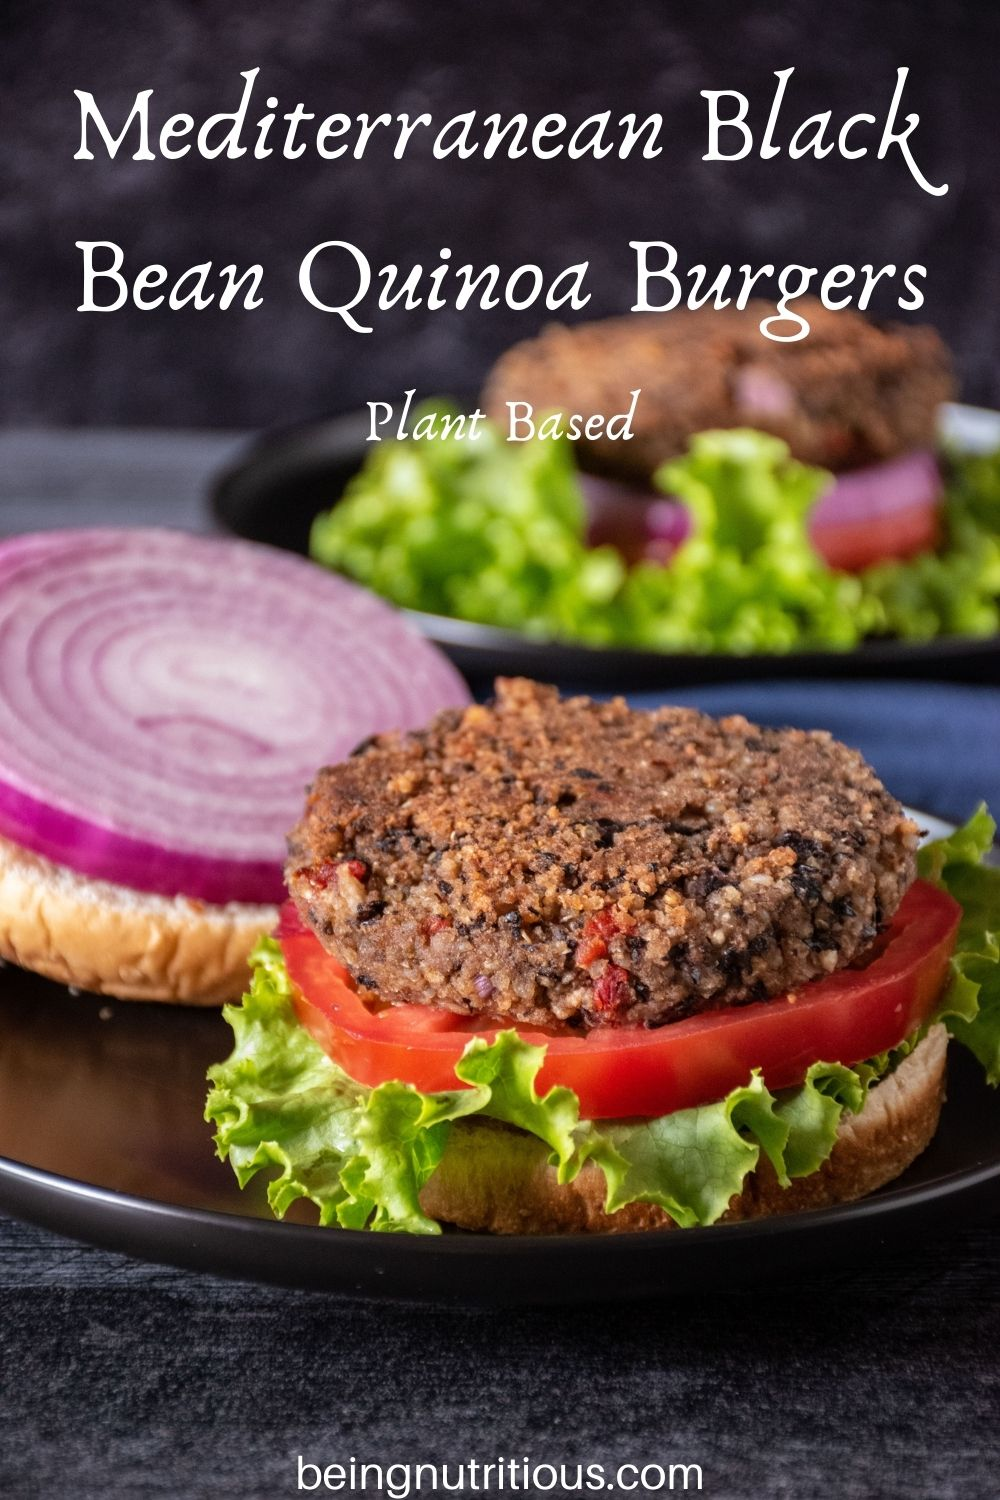 Bean burger on an open bun, with onions, tomatoes, and lettuce. Text overlay: Mediterranean Black Bean Quinoa Burgers; Plant Based.